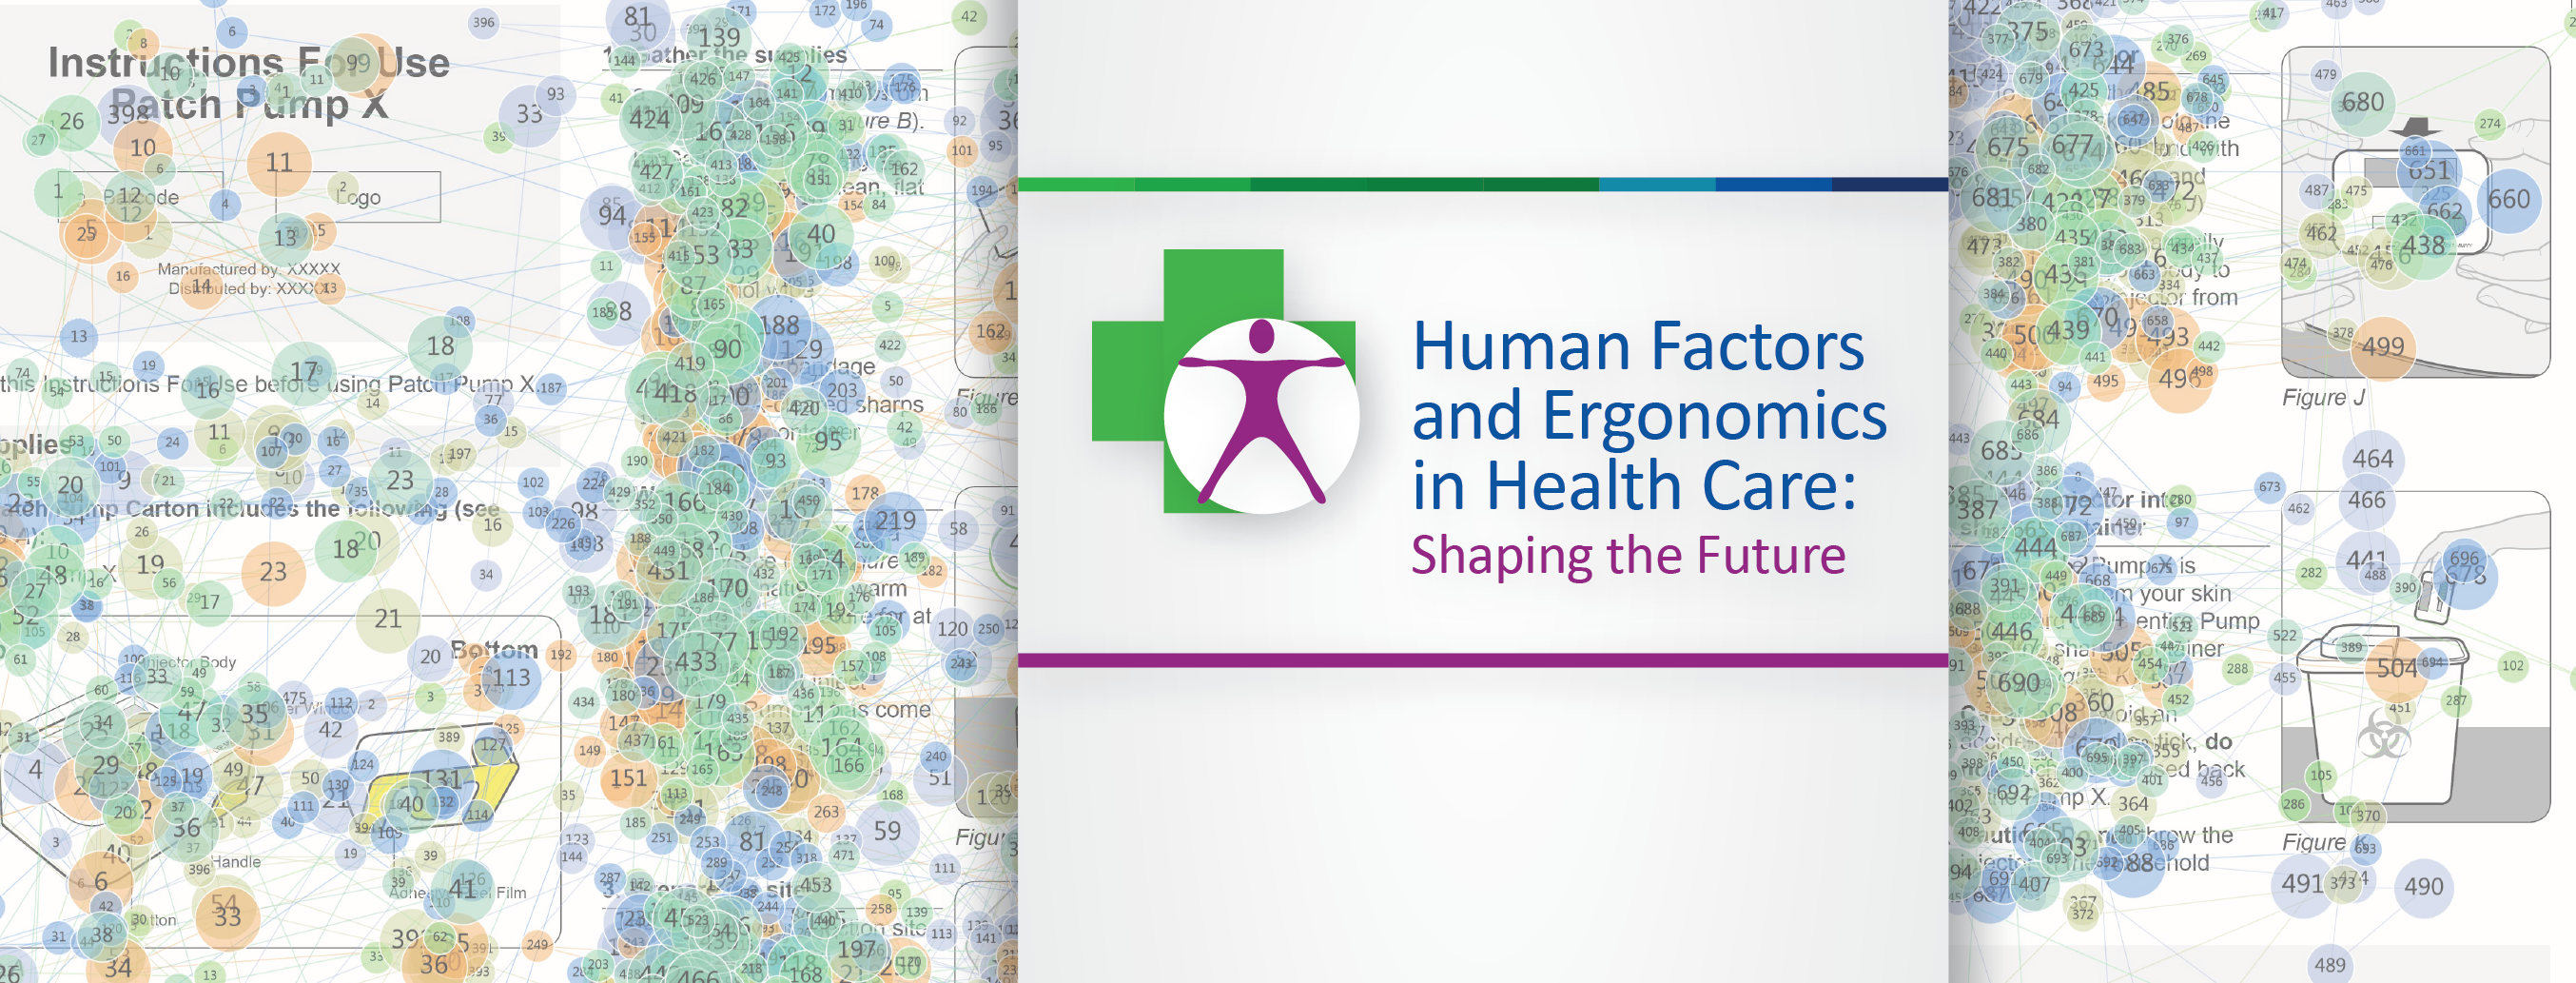 HFES Presentation: Improving IFUs with Eye Tracking, Human Factors, and Design